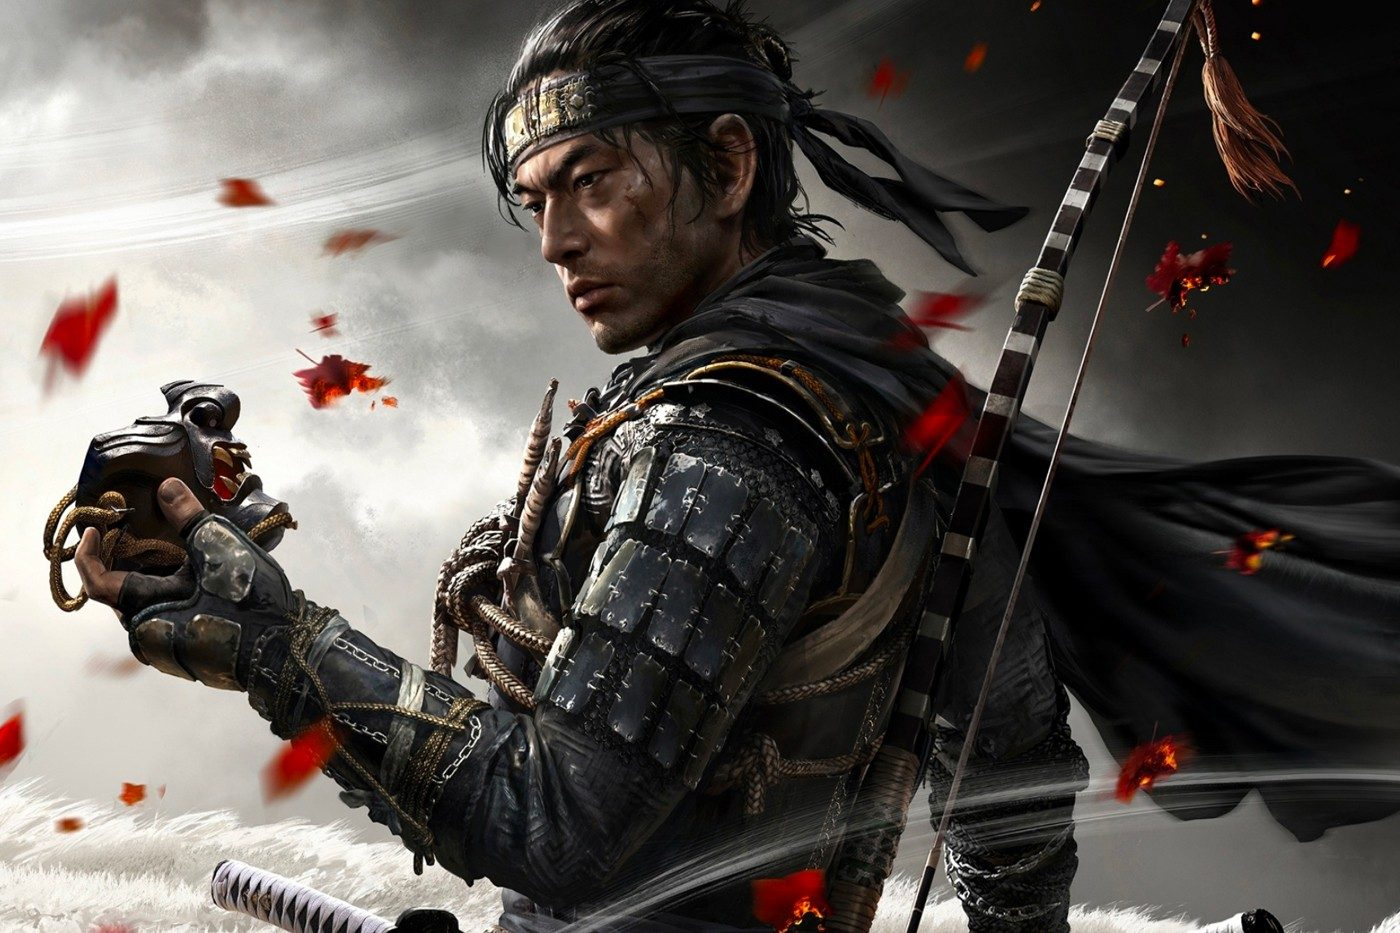 https___hypebeast.com_image_2021_03_ghost-of-tsushima-john-wick-director-chad-stahelski-film-announcement-001